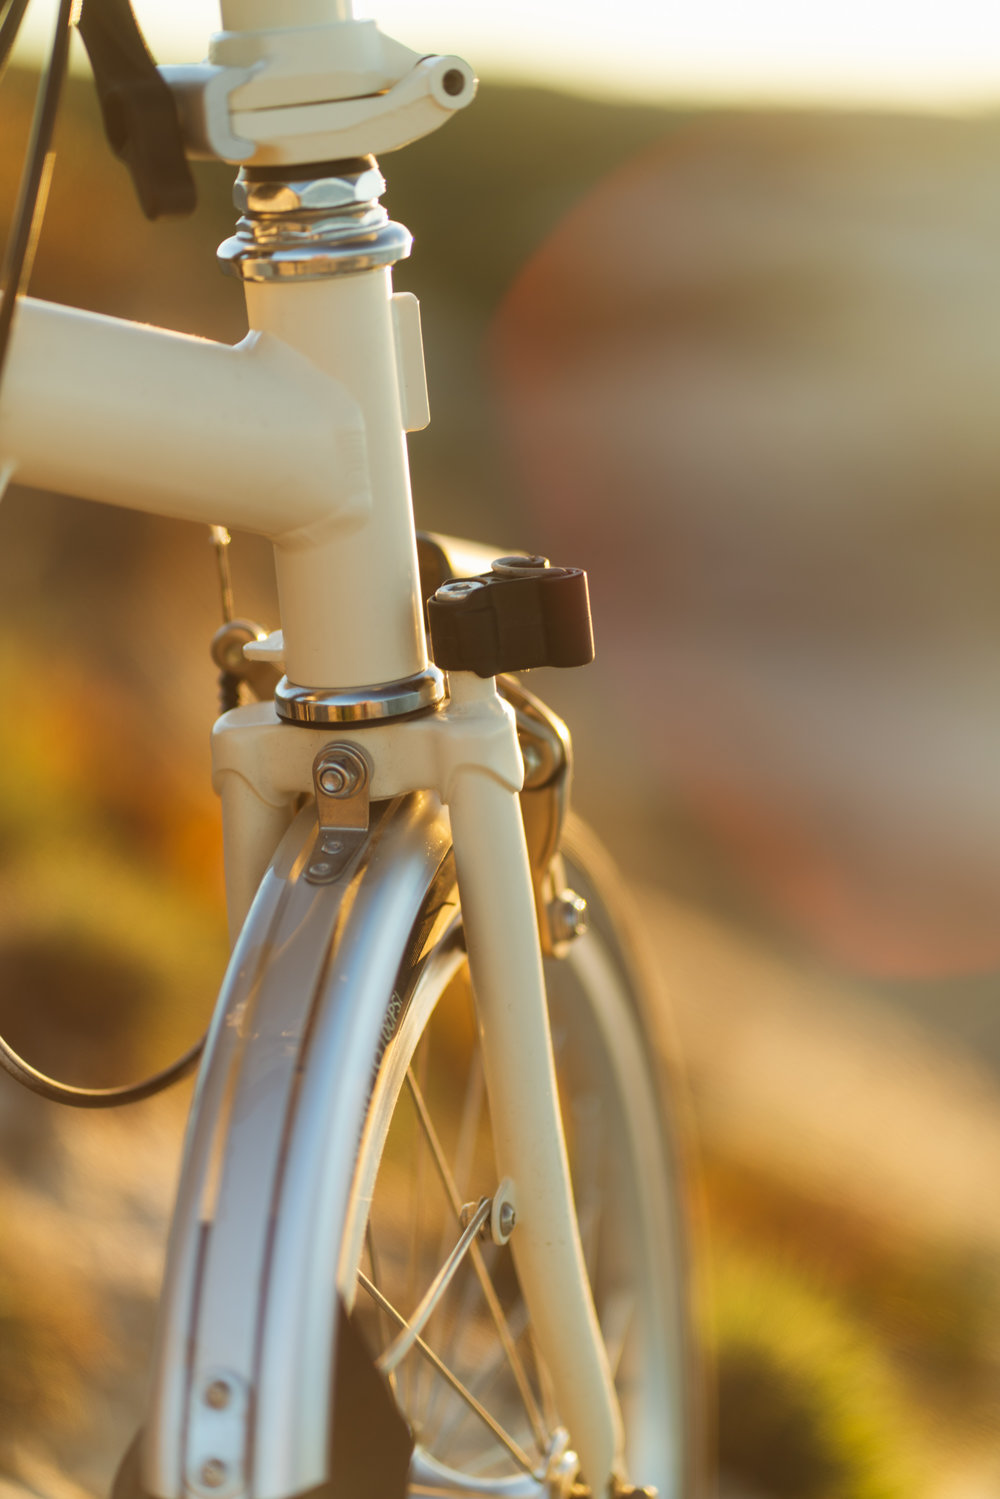 Brompton bike detail with sunset light.